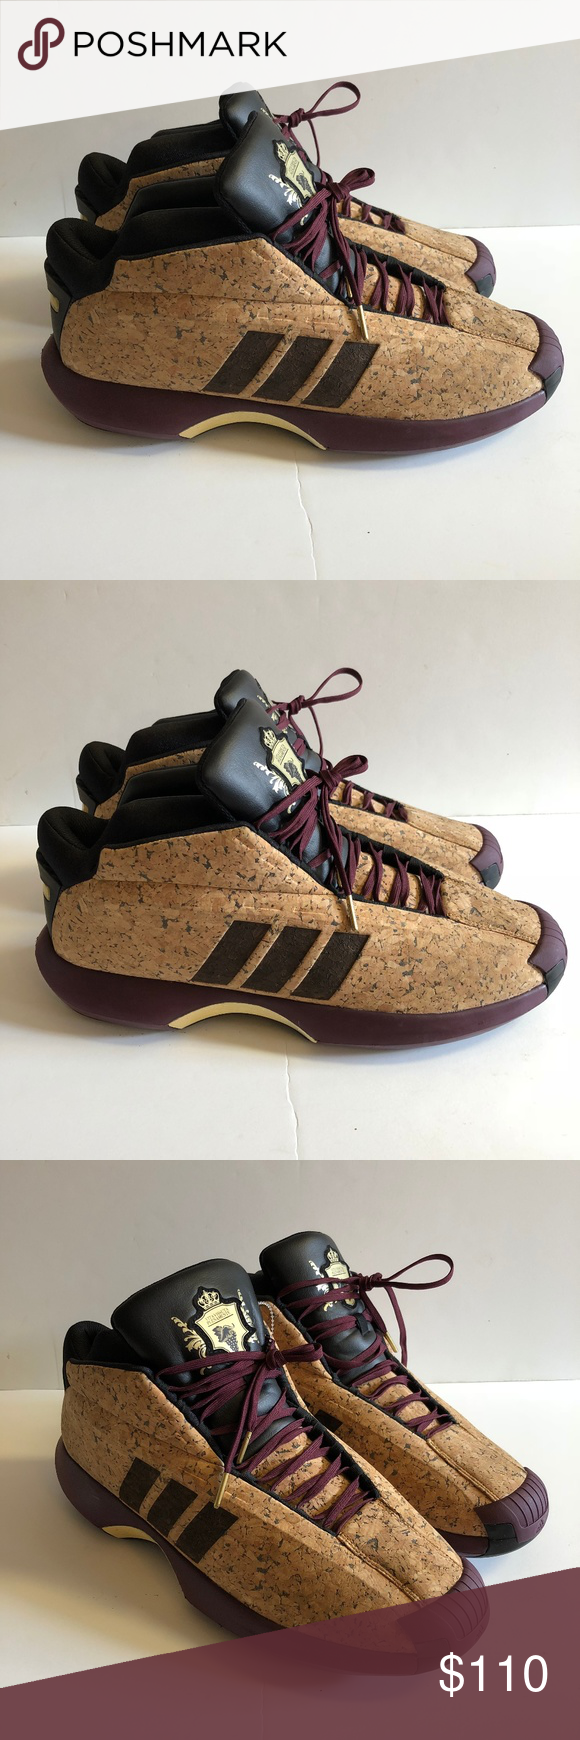 brand new a8d5e 59b56 Adidas Crazy 1 Basketball Shoes Kobe Bryant Vino New without box Adidas  Crazy 1 Basketball Shoes